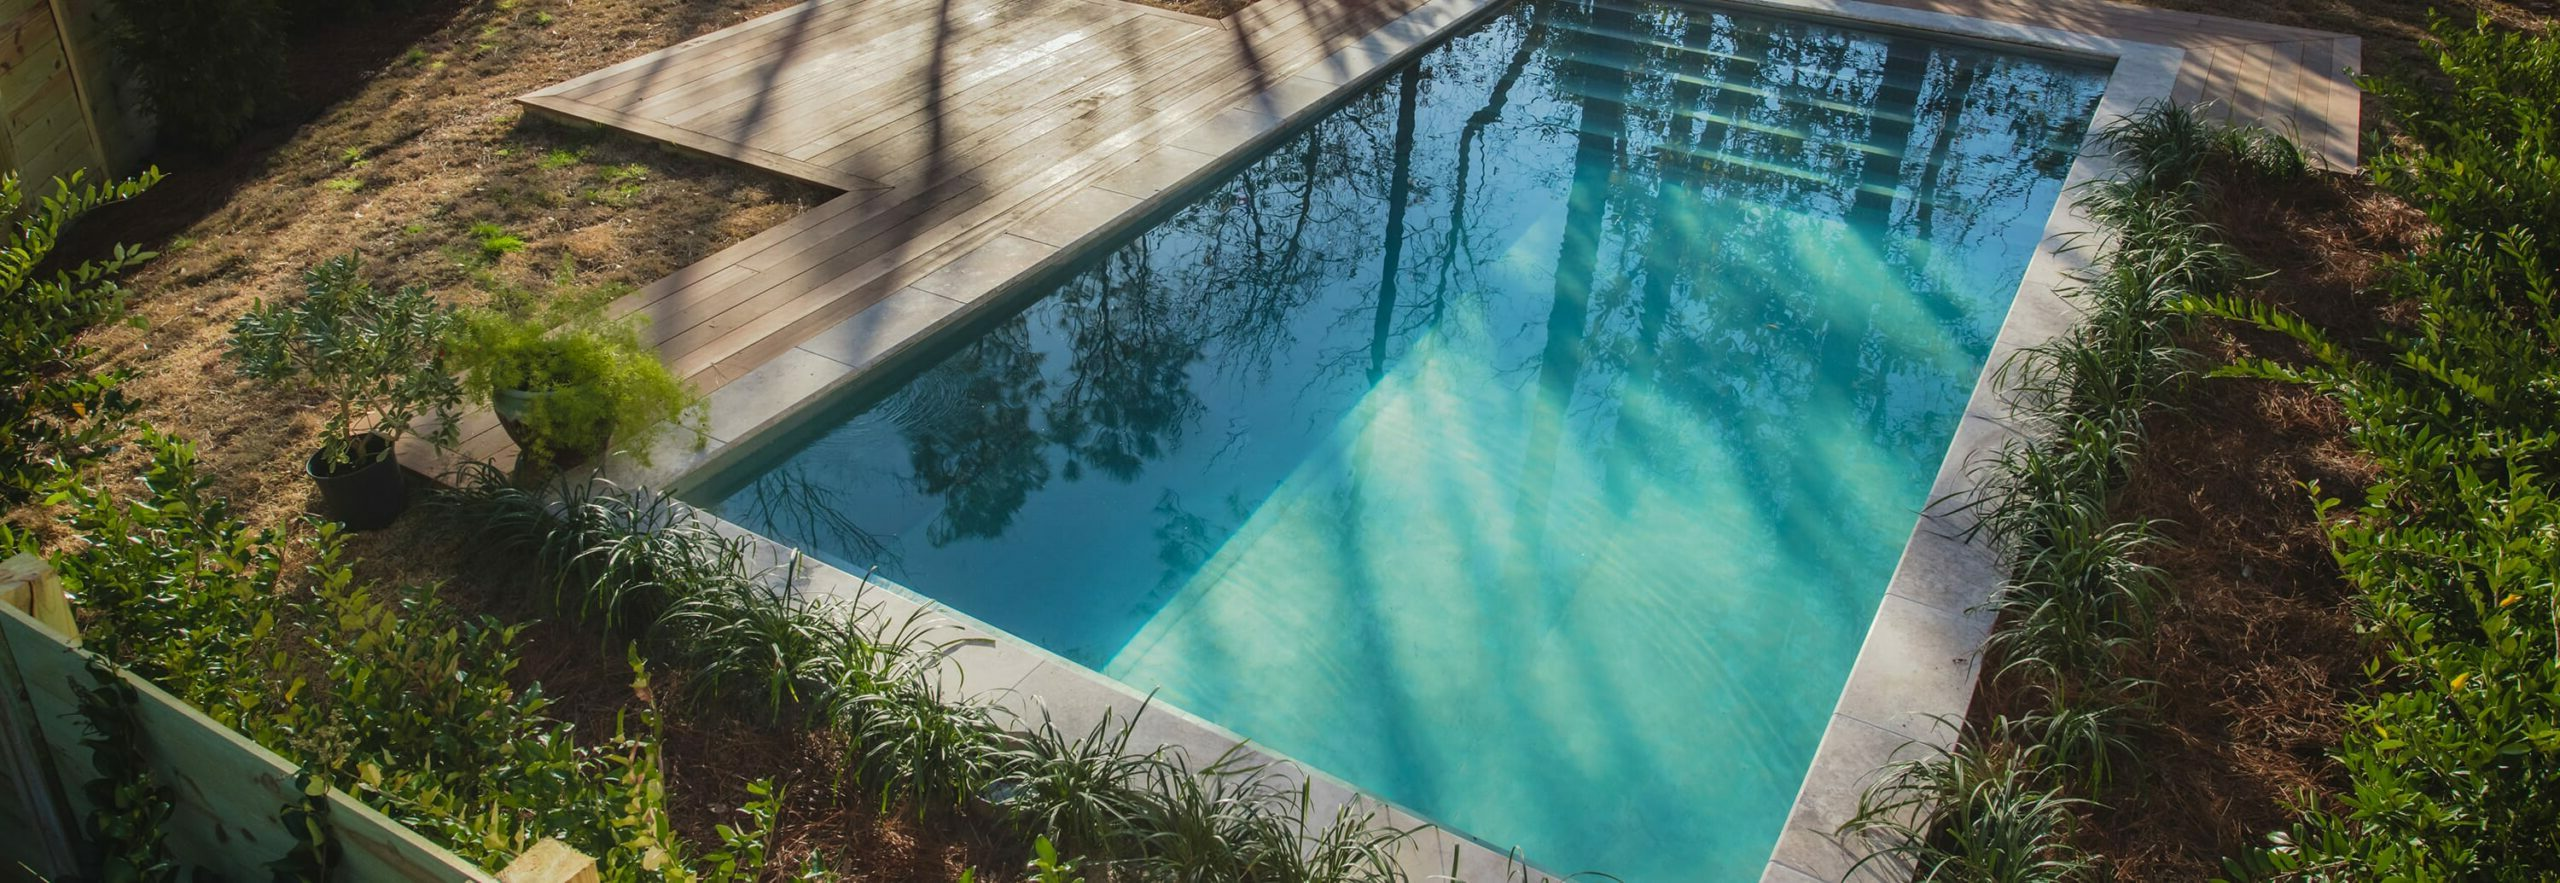 http://Stainless%20steel%20in%20ground%20pool